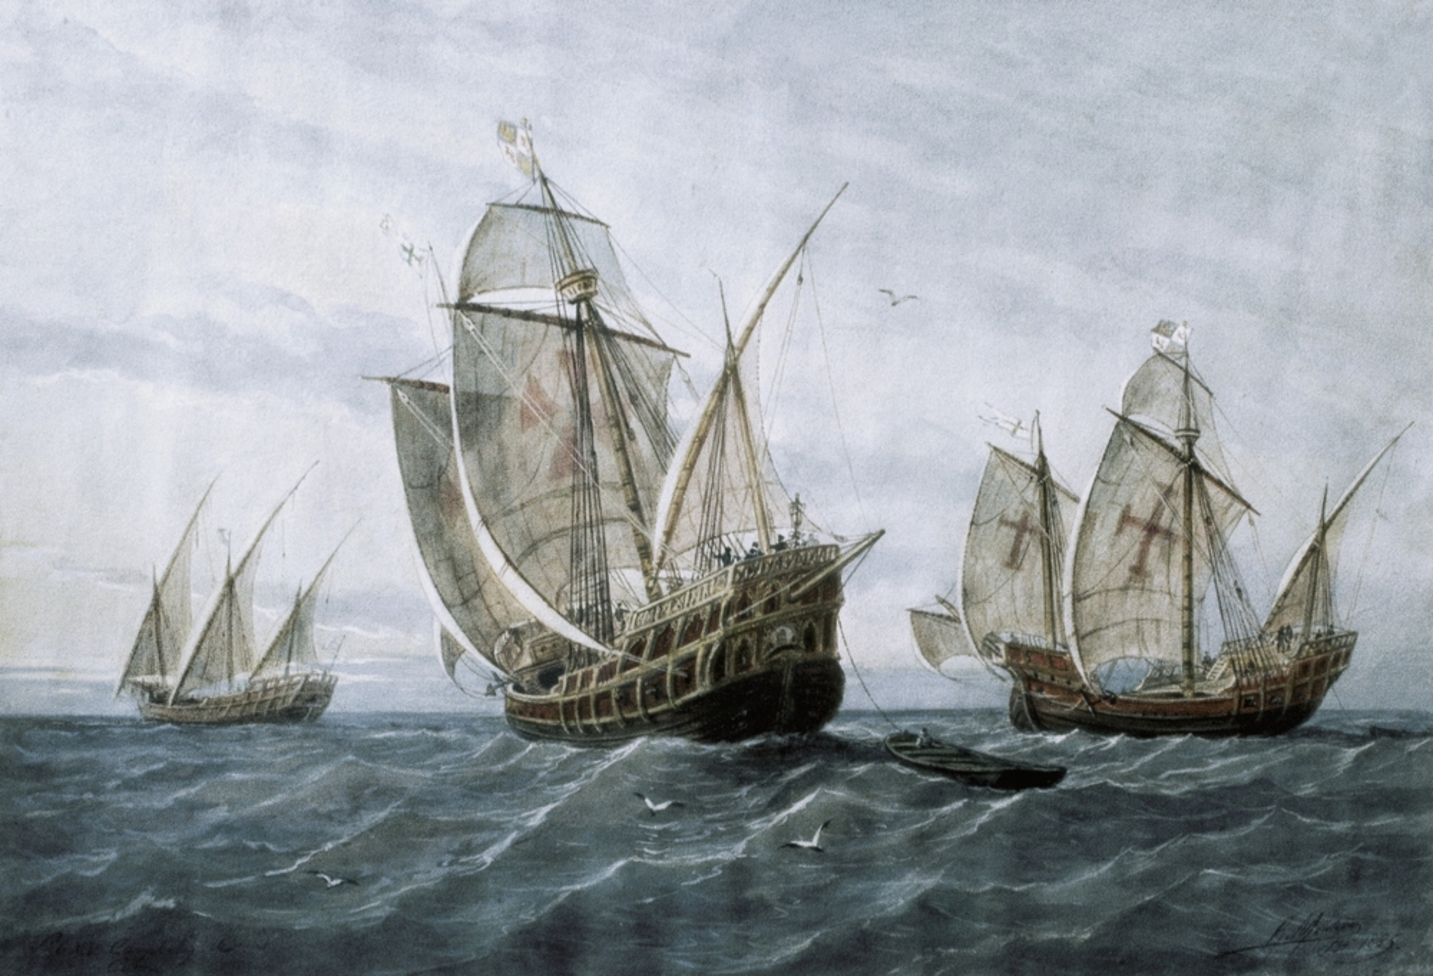 The Pinta, the Santa María and the Niña.